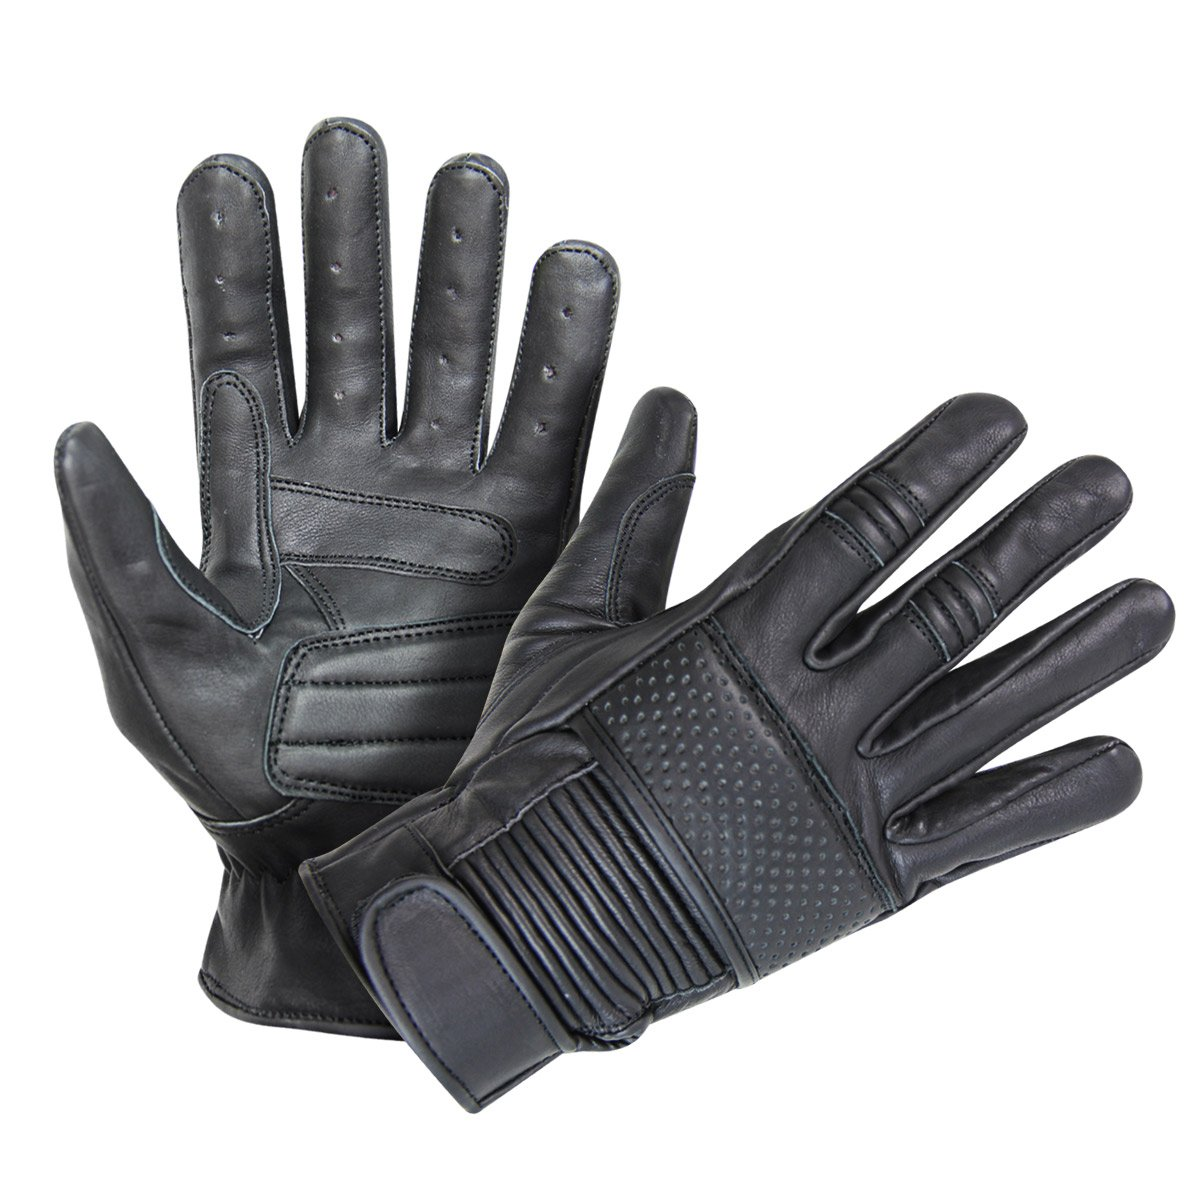 Xelement UK2650 Mens Black Leather Riding Gloves - X-Large